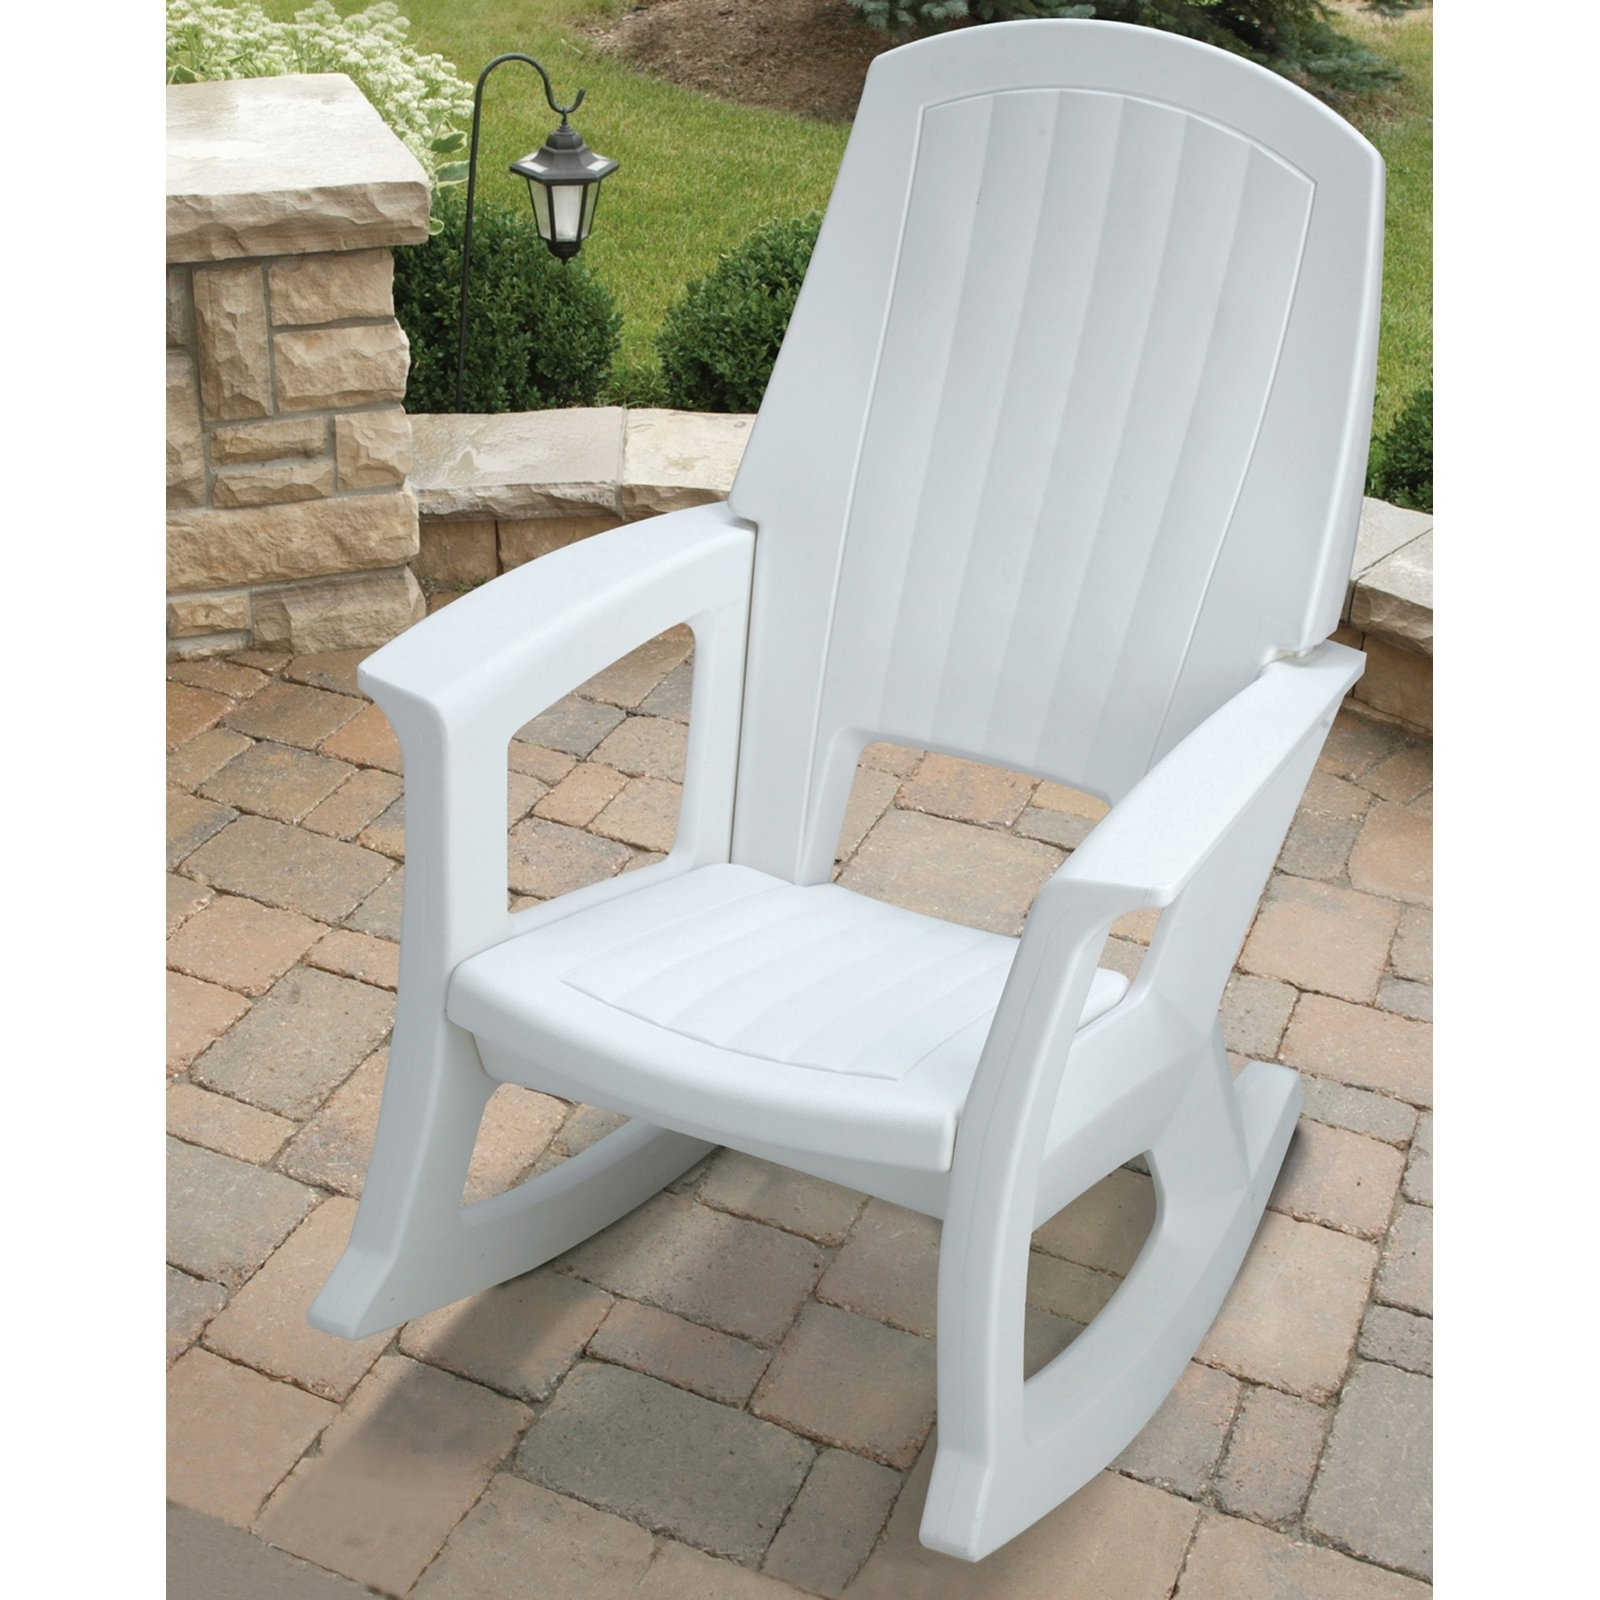 Semco Recycled Plastic Rocking Chair – Walmart With Regard To Patio Rocking Chairs (View 14 of 15)